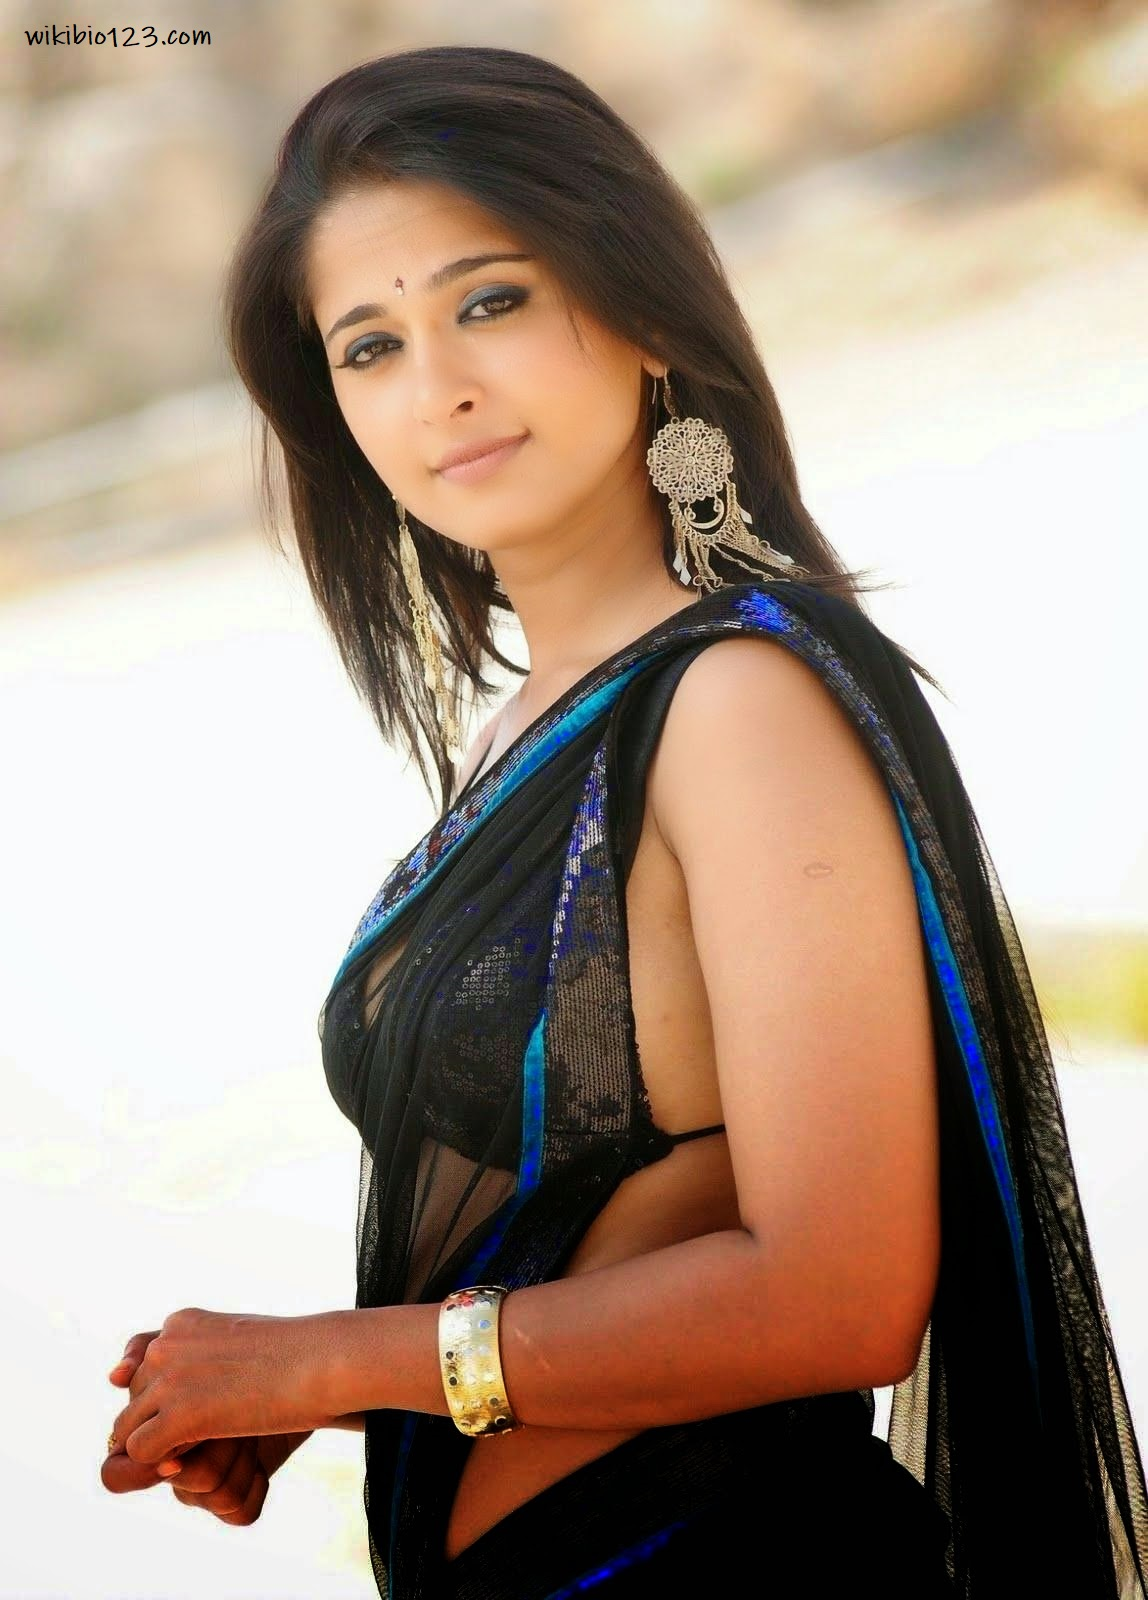 Anushka Shetty HD Images Wallpapers Download